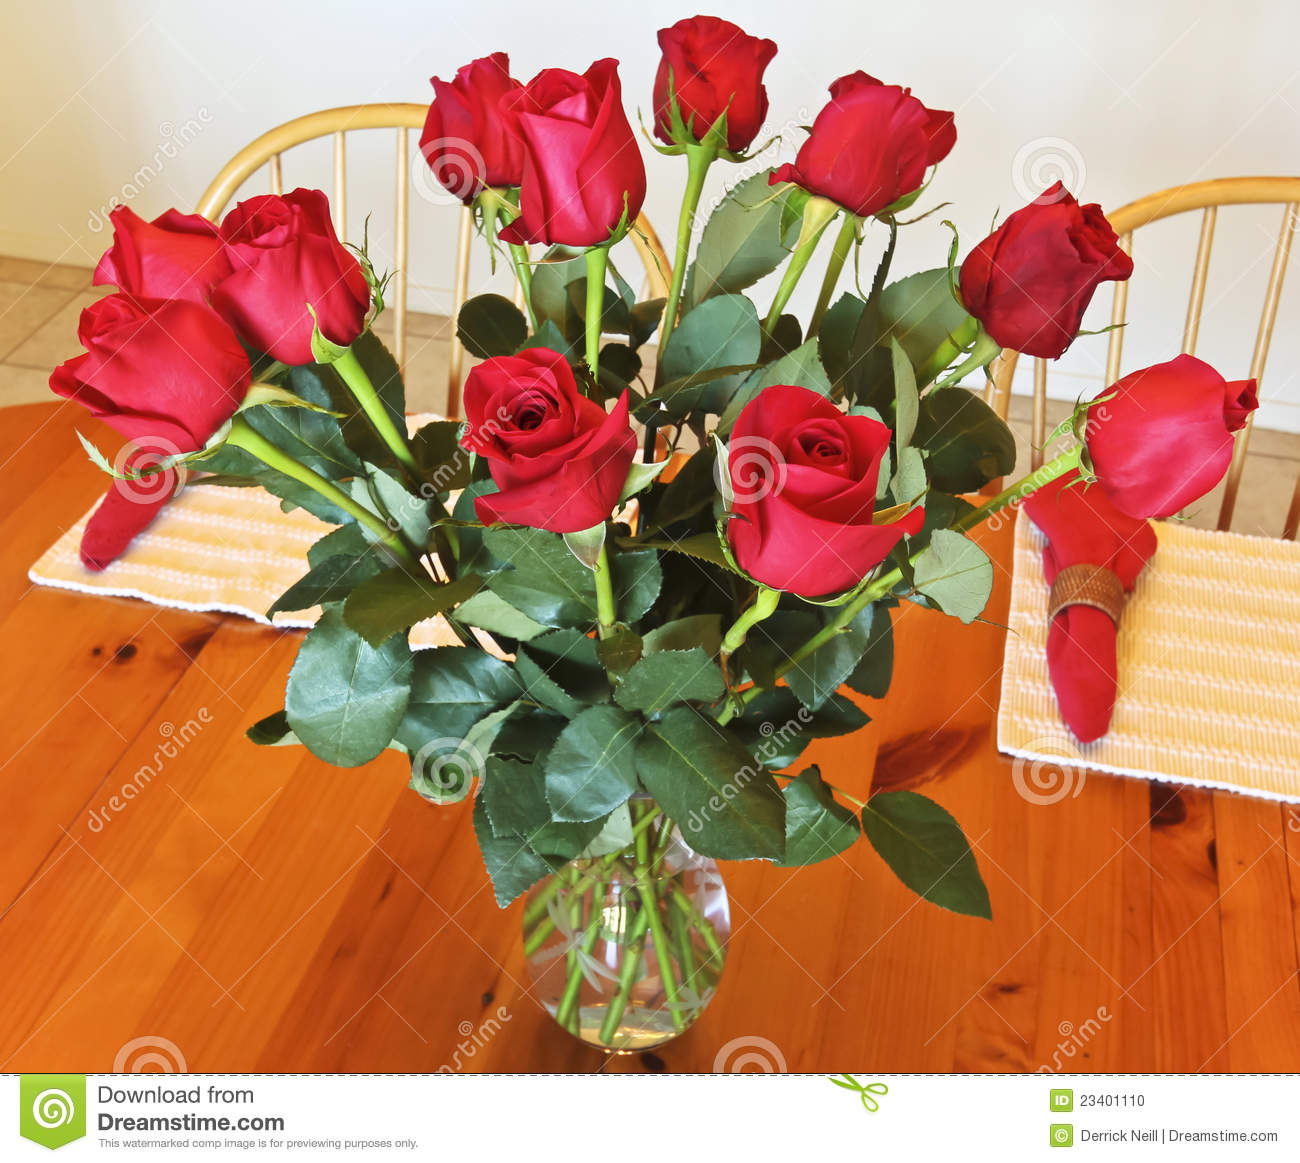 A Dozen Red Roses In A Crystal Vase Stock Photo Image 23401110